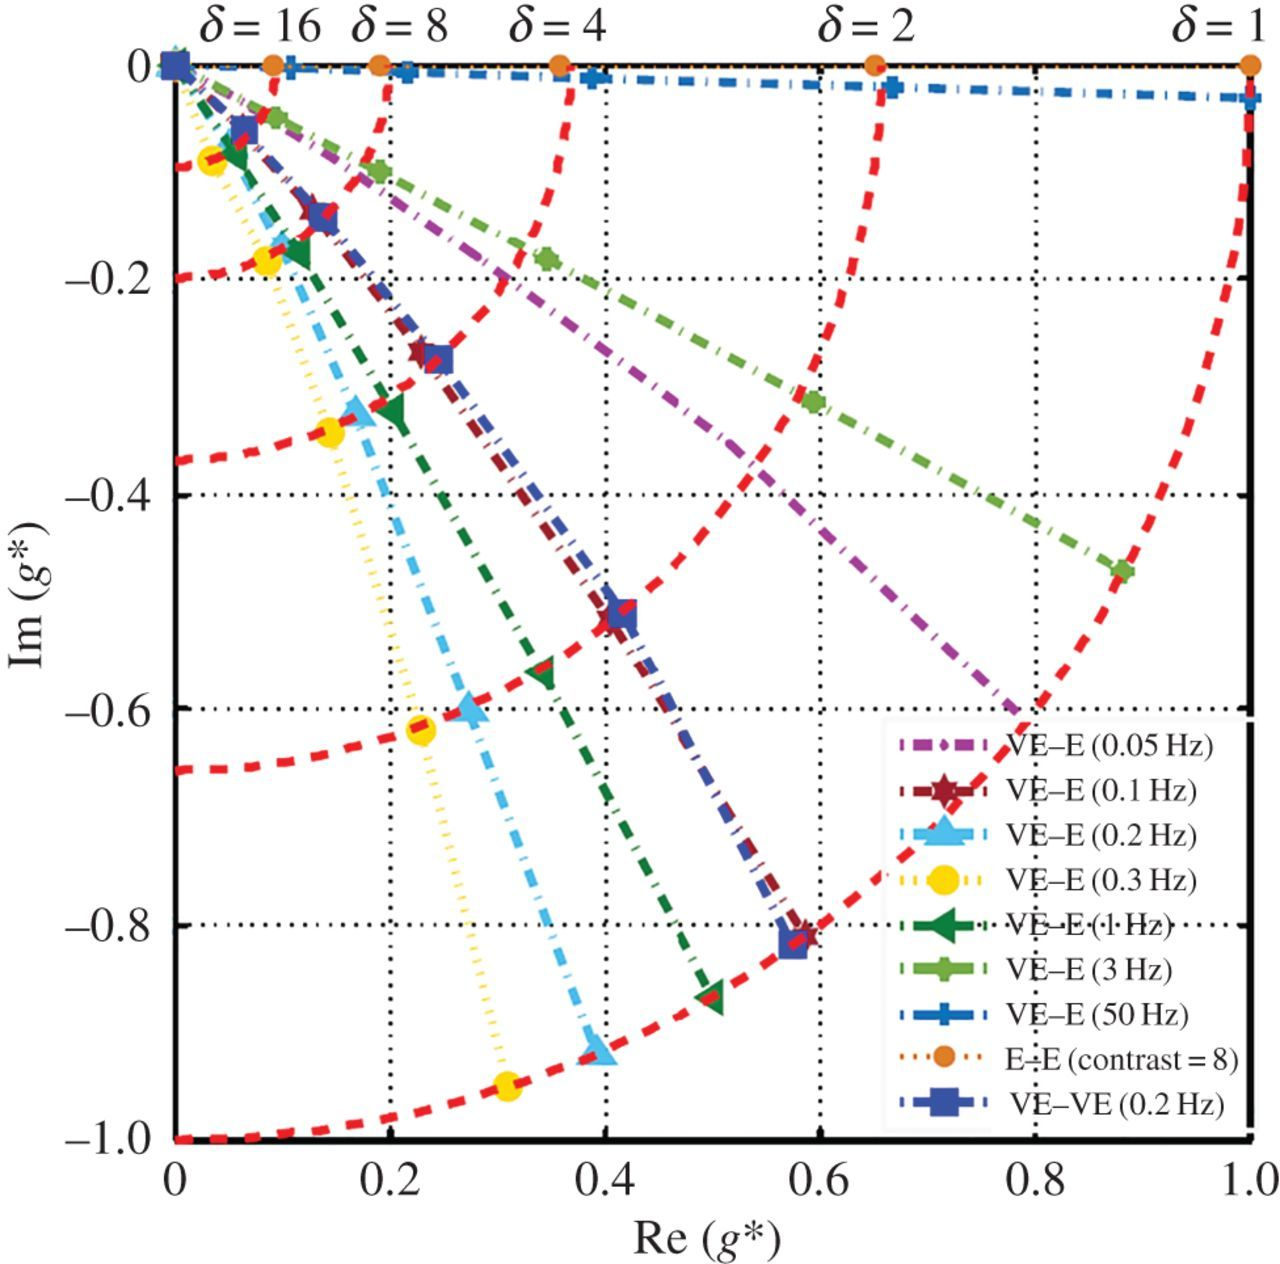 Frequency-dependent scaling from mesoscale to macroscale in